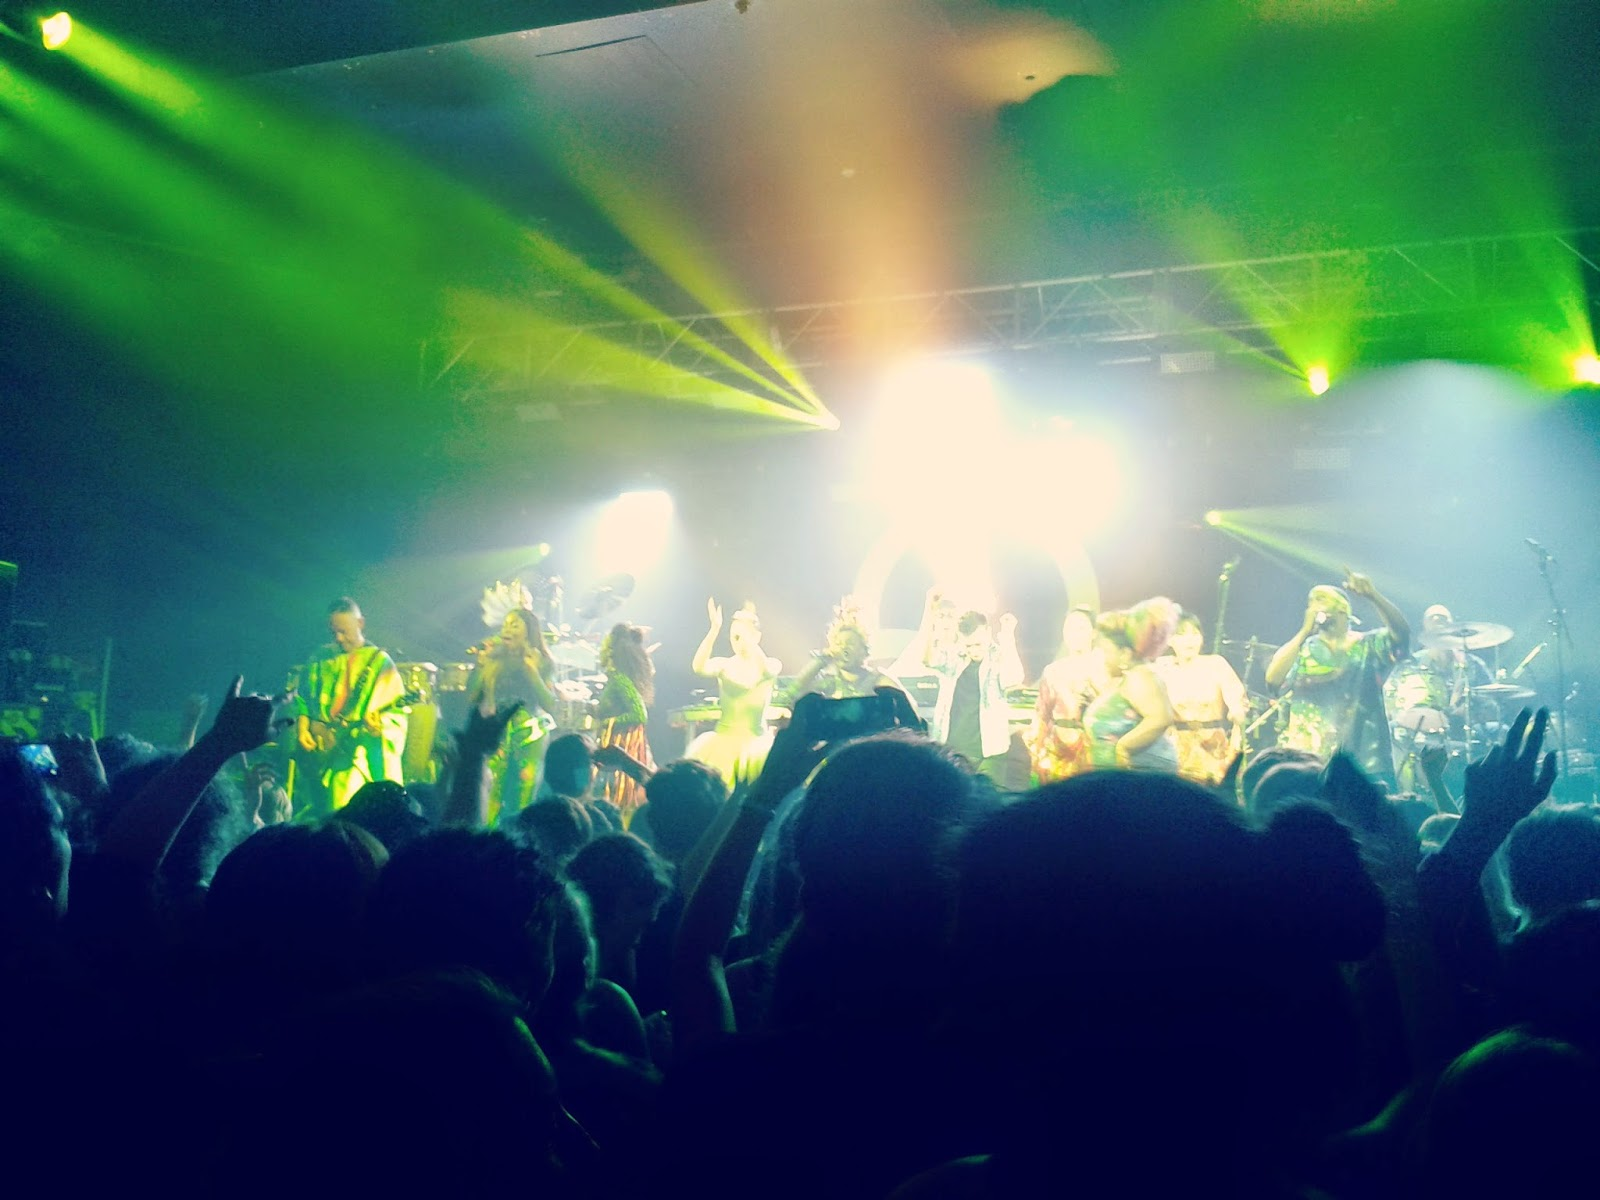 Project 365 #49 day 335 - Basement Jaxx 02 Academy Bristol // 76sunflowers